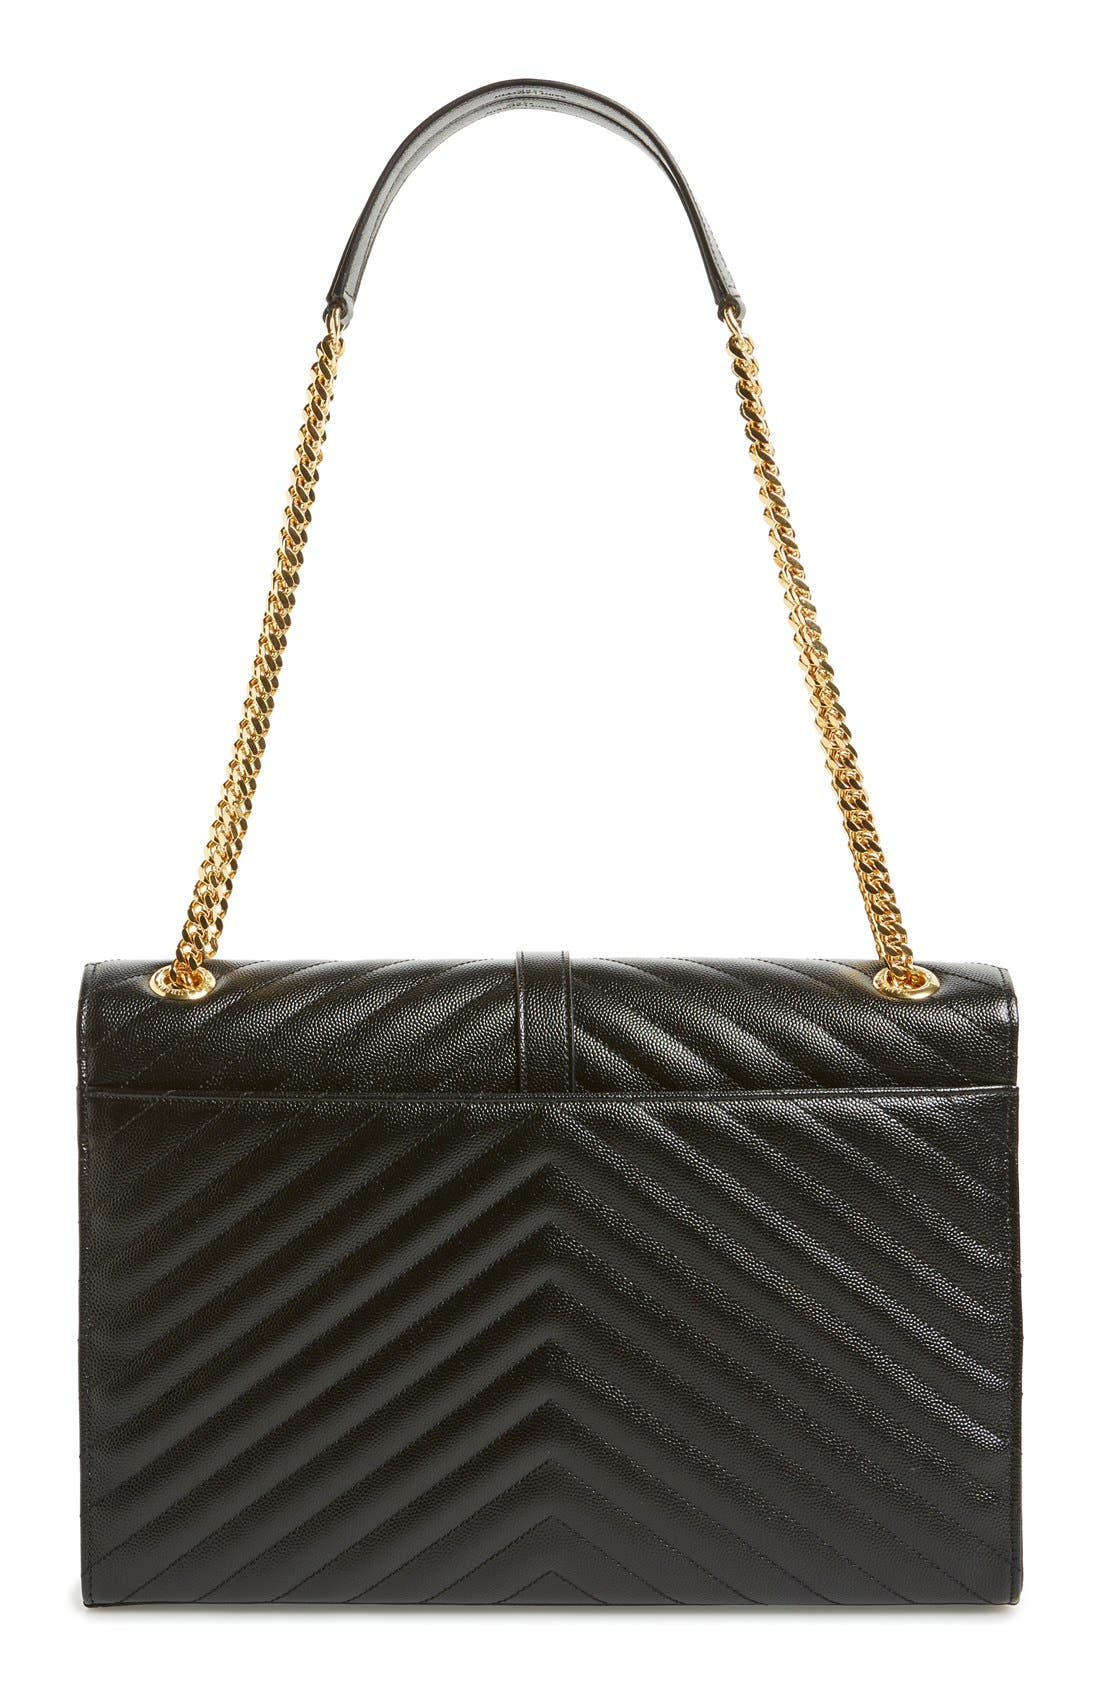 Alternate Image 3  - Saint Laurent 'Large Monogram' Grained Leather Shoulder Bag